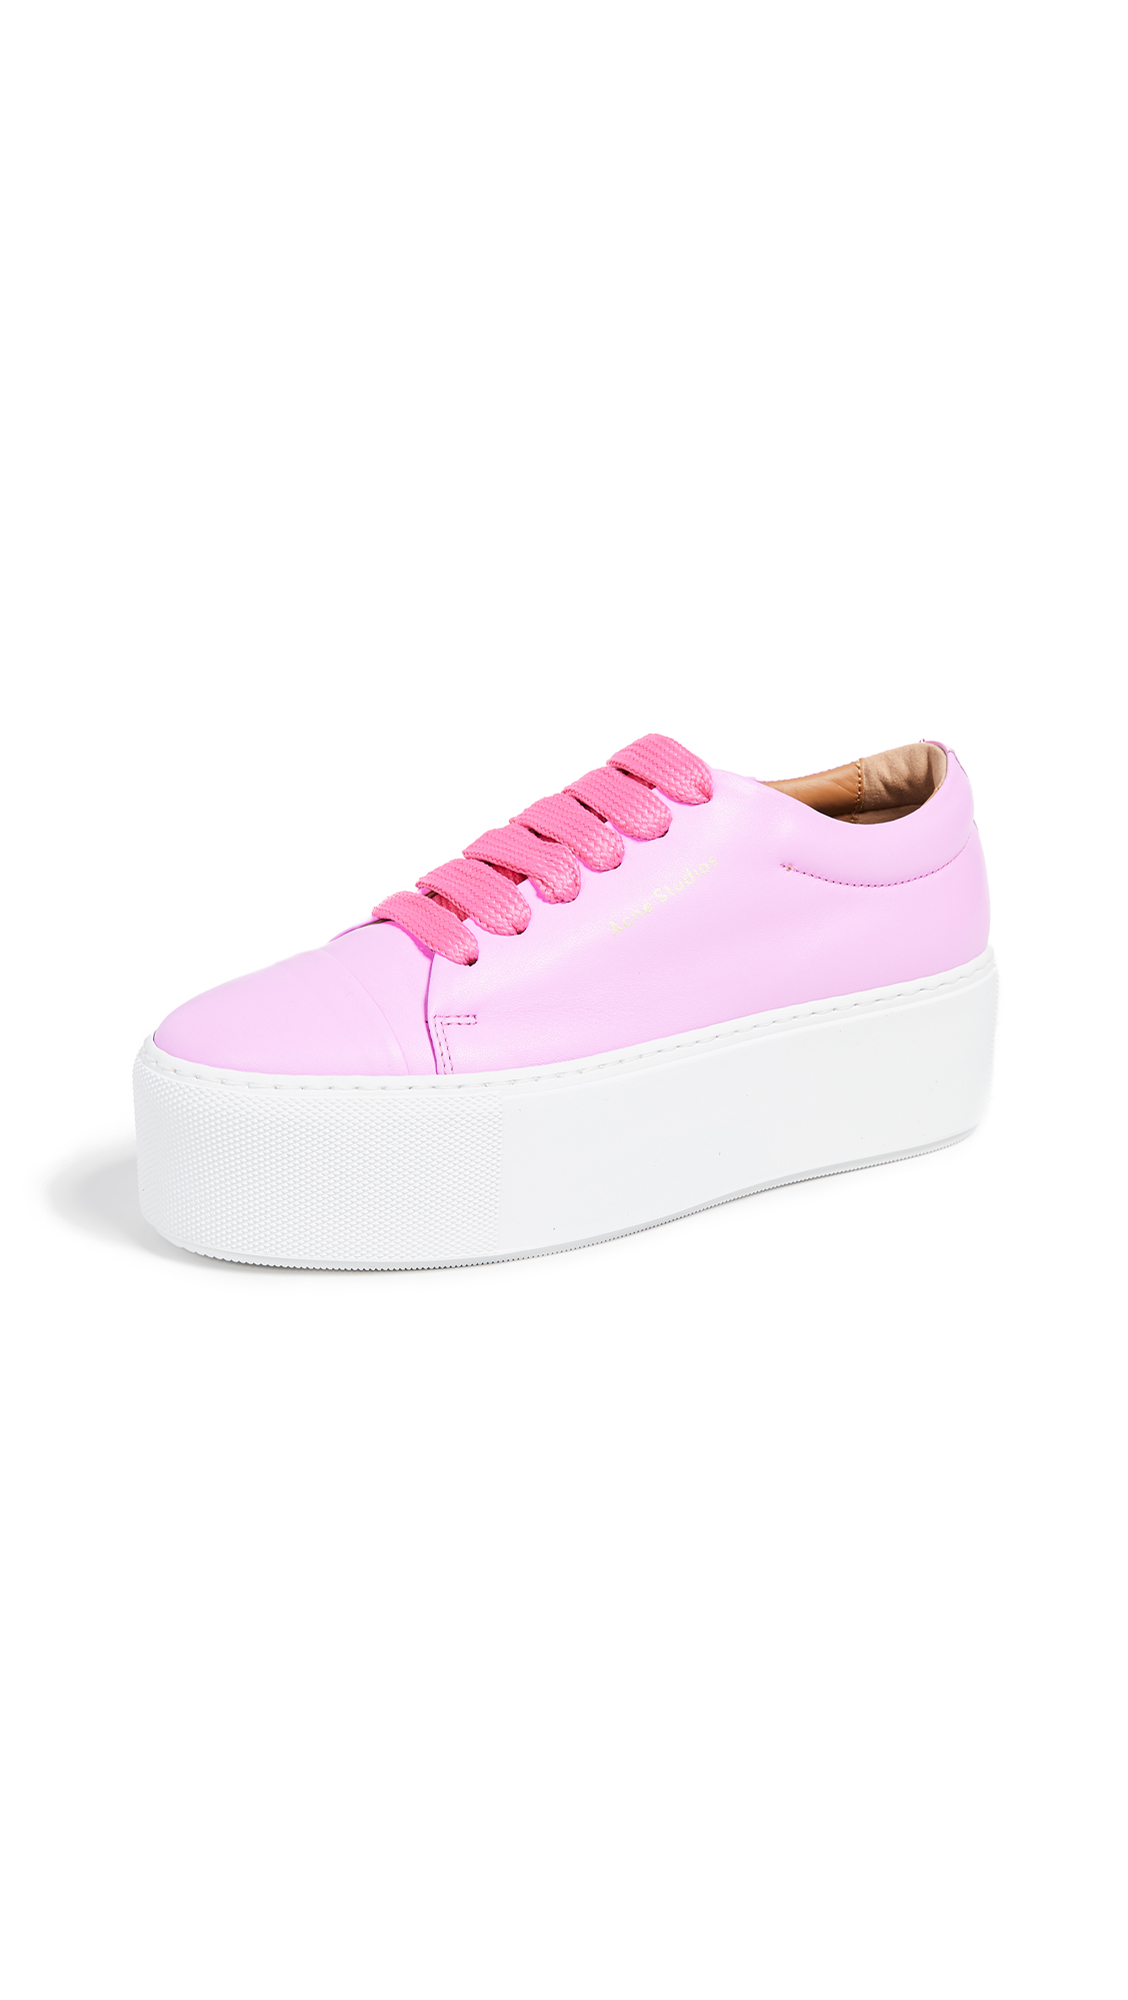 Acne Studios Drihanna Logo Sneakers - Pink/White